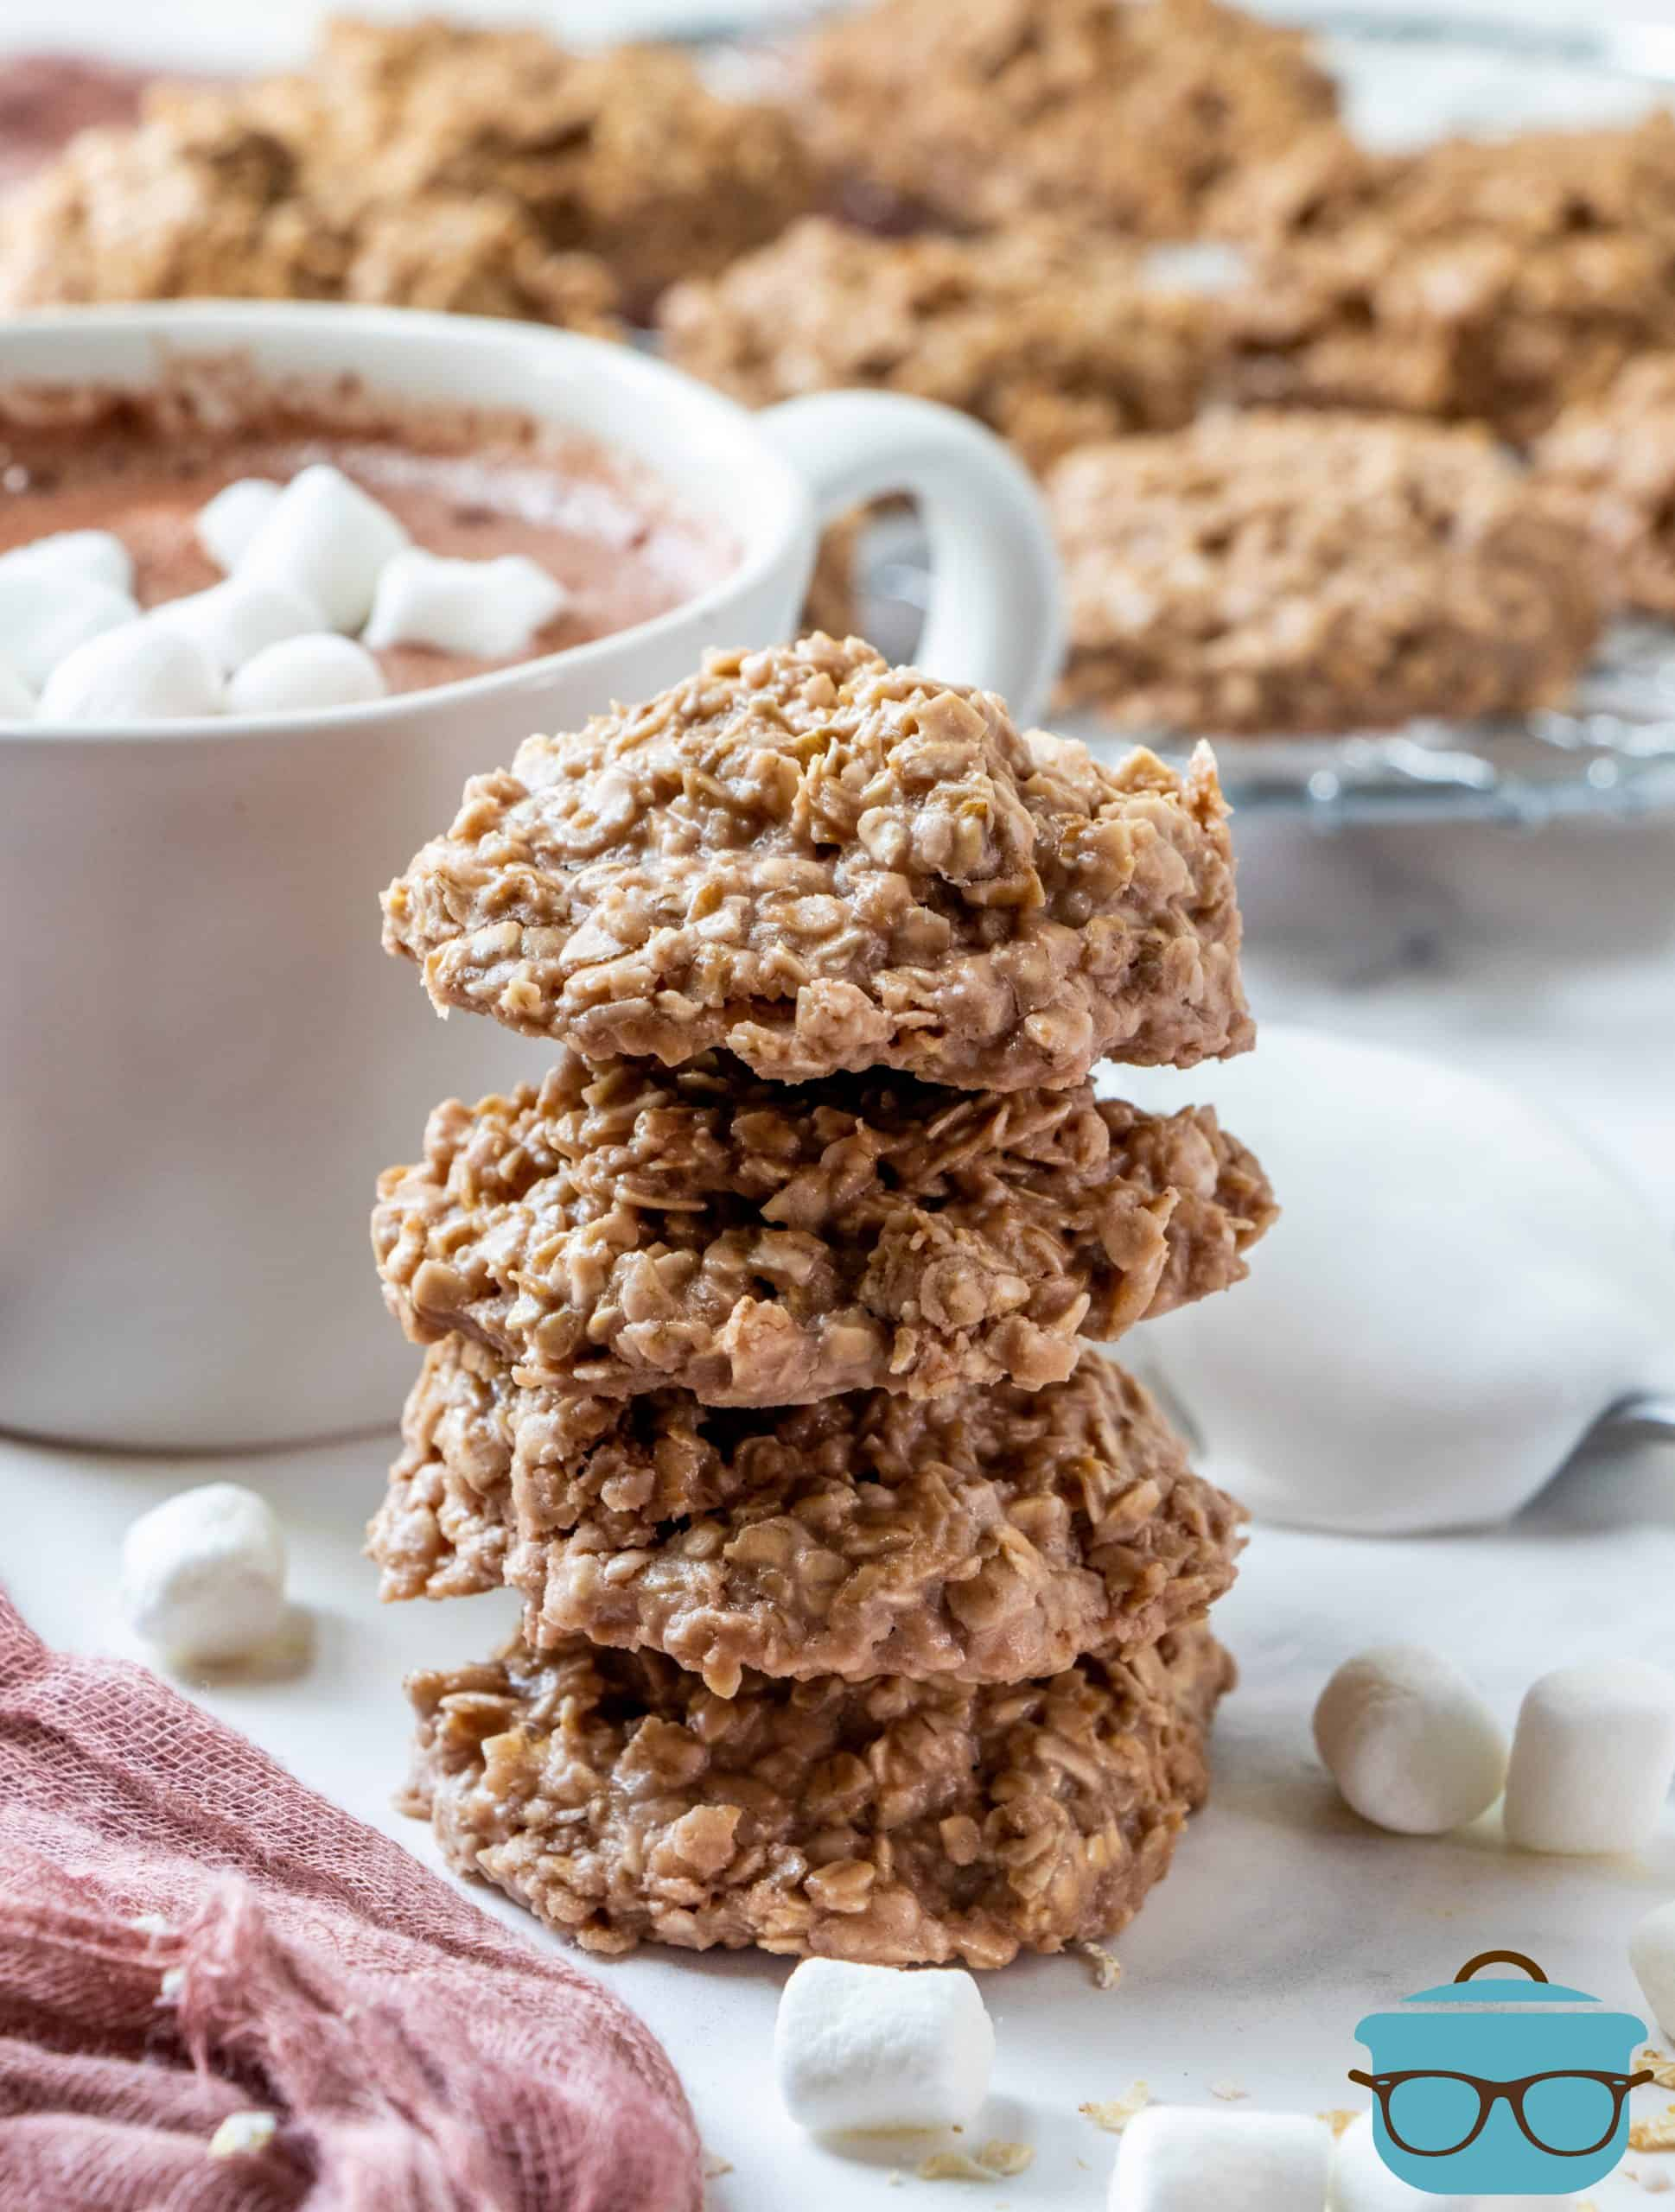 HOT CHOCOLATE NO BAKE COOKIES, stacked with a cup of hot chocolate in the background.